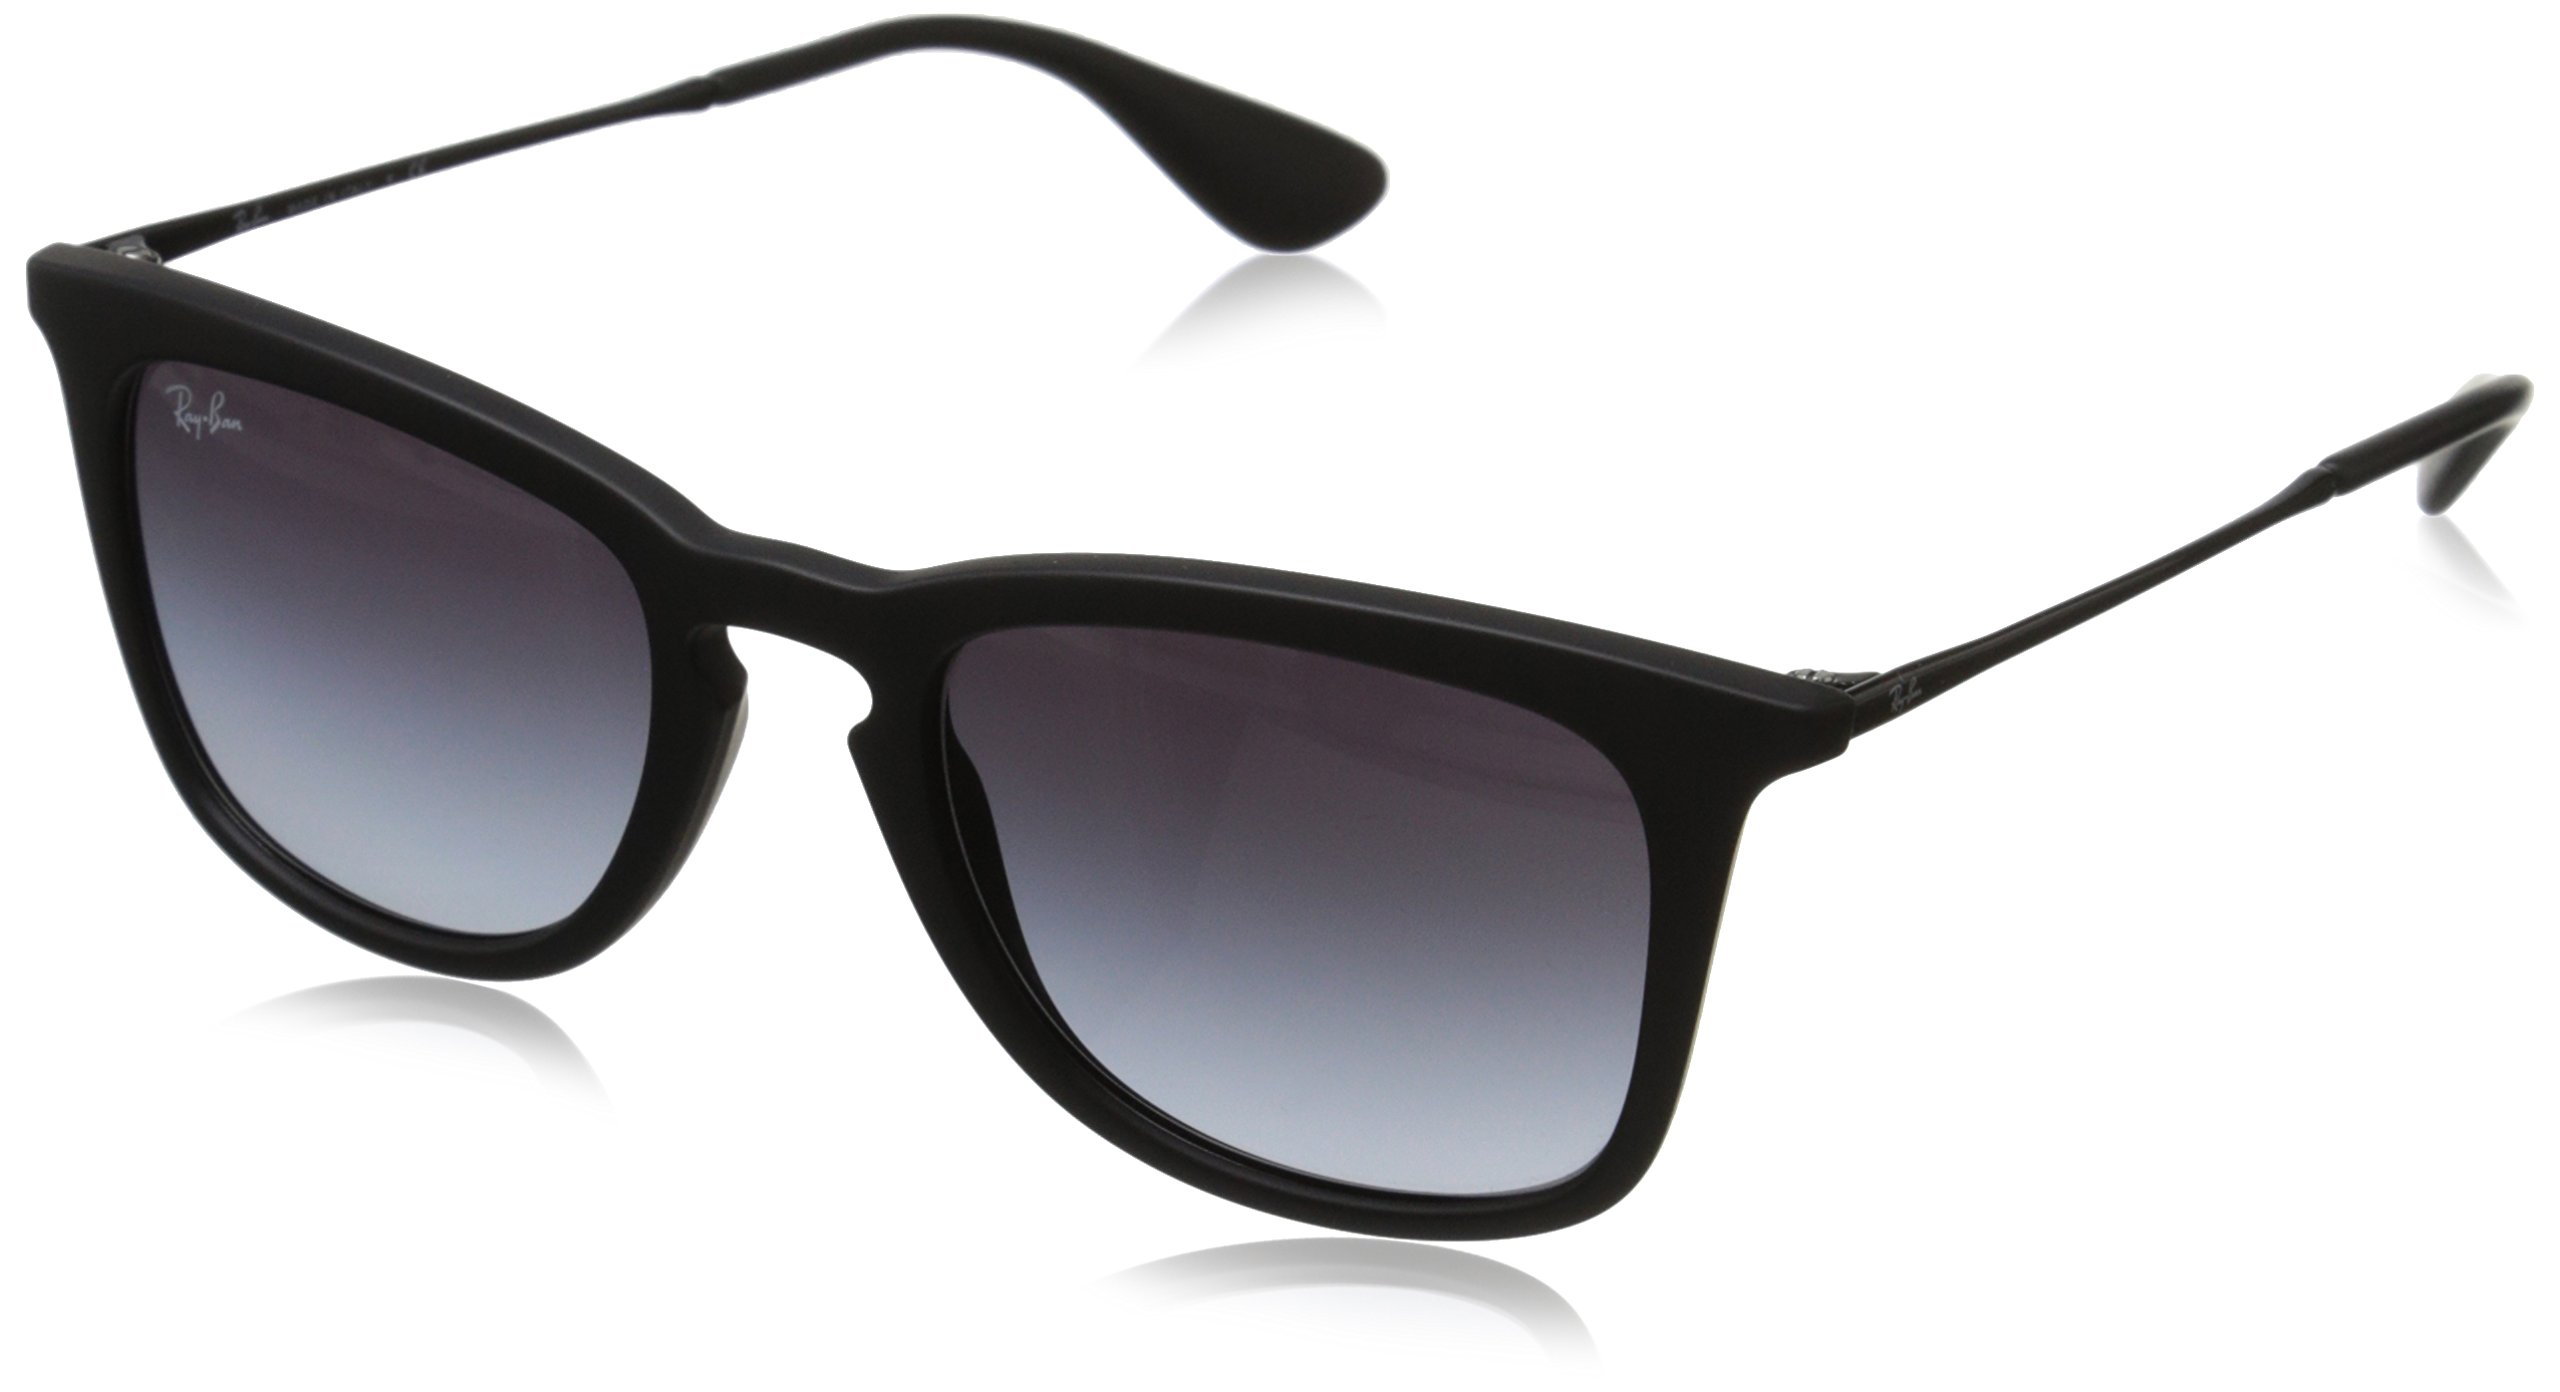 Ray-Ban INJECTED MAN SUNGLASS - RUBBER BLACK Frame LIGHT GREY ...